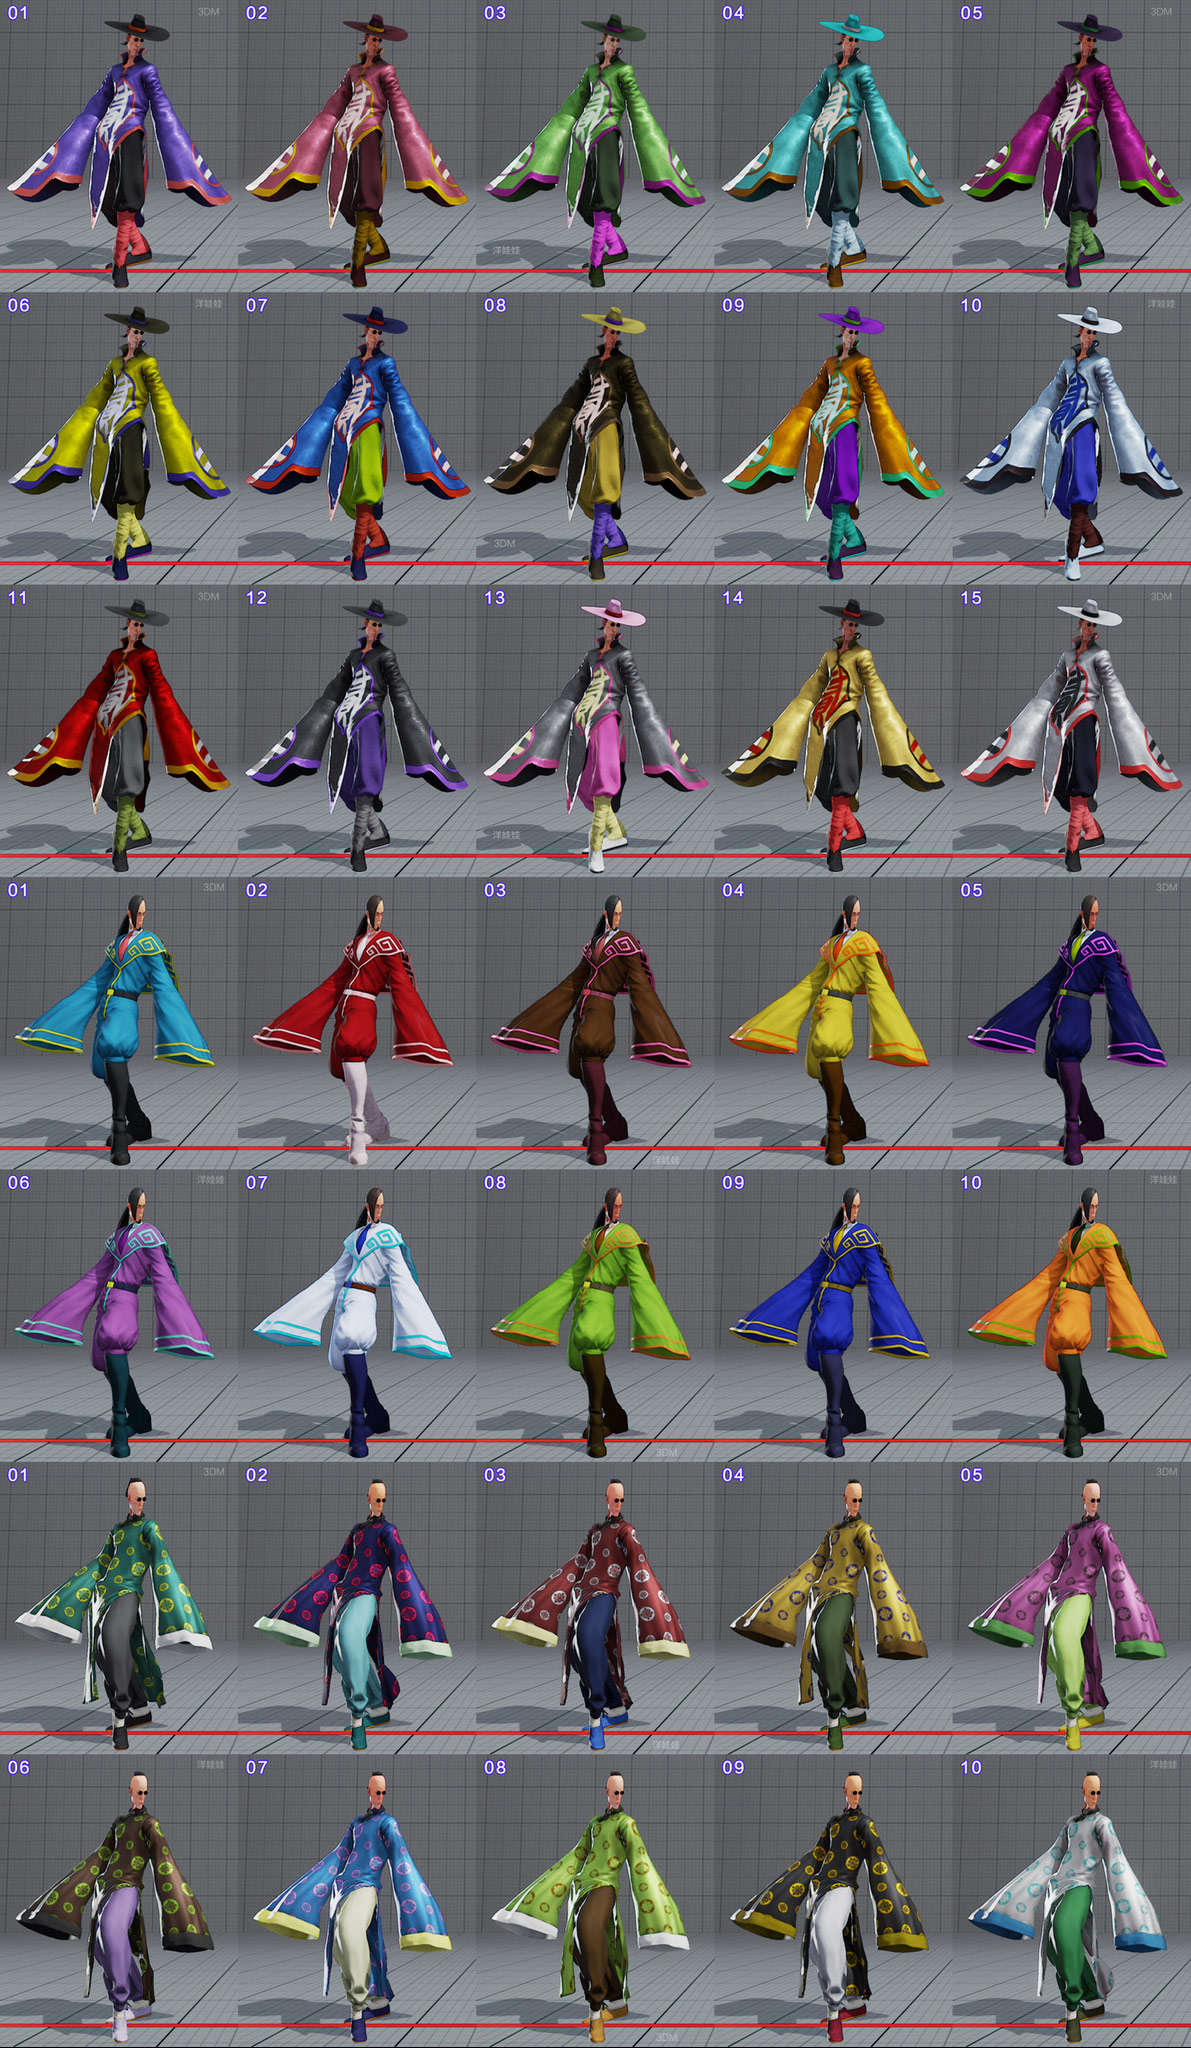 All colors for all current costumes in Street Fighter 5 11 out of 18 image gallery